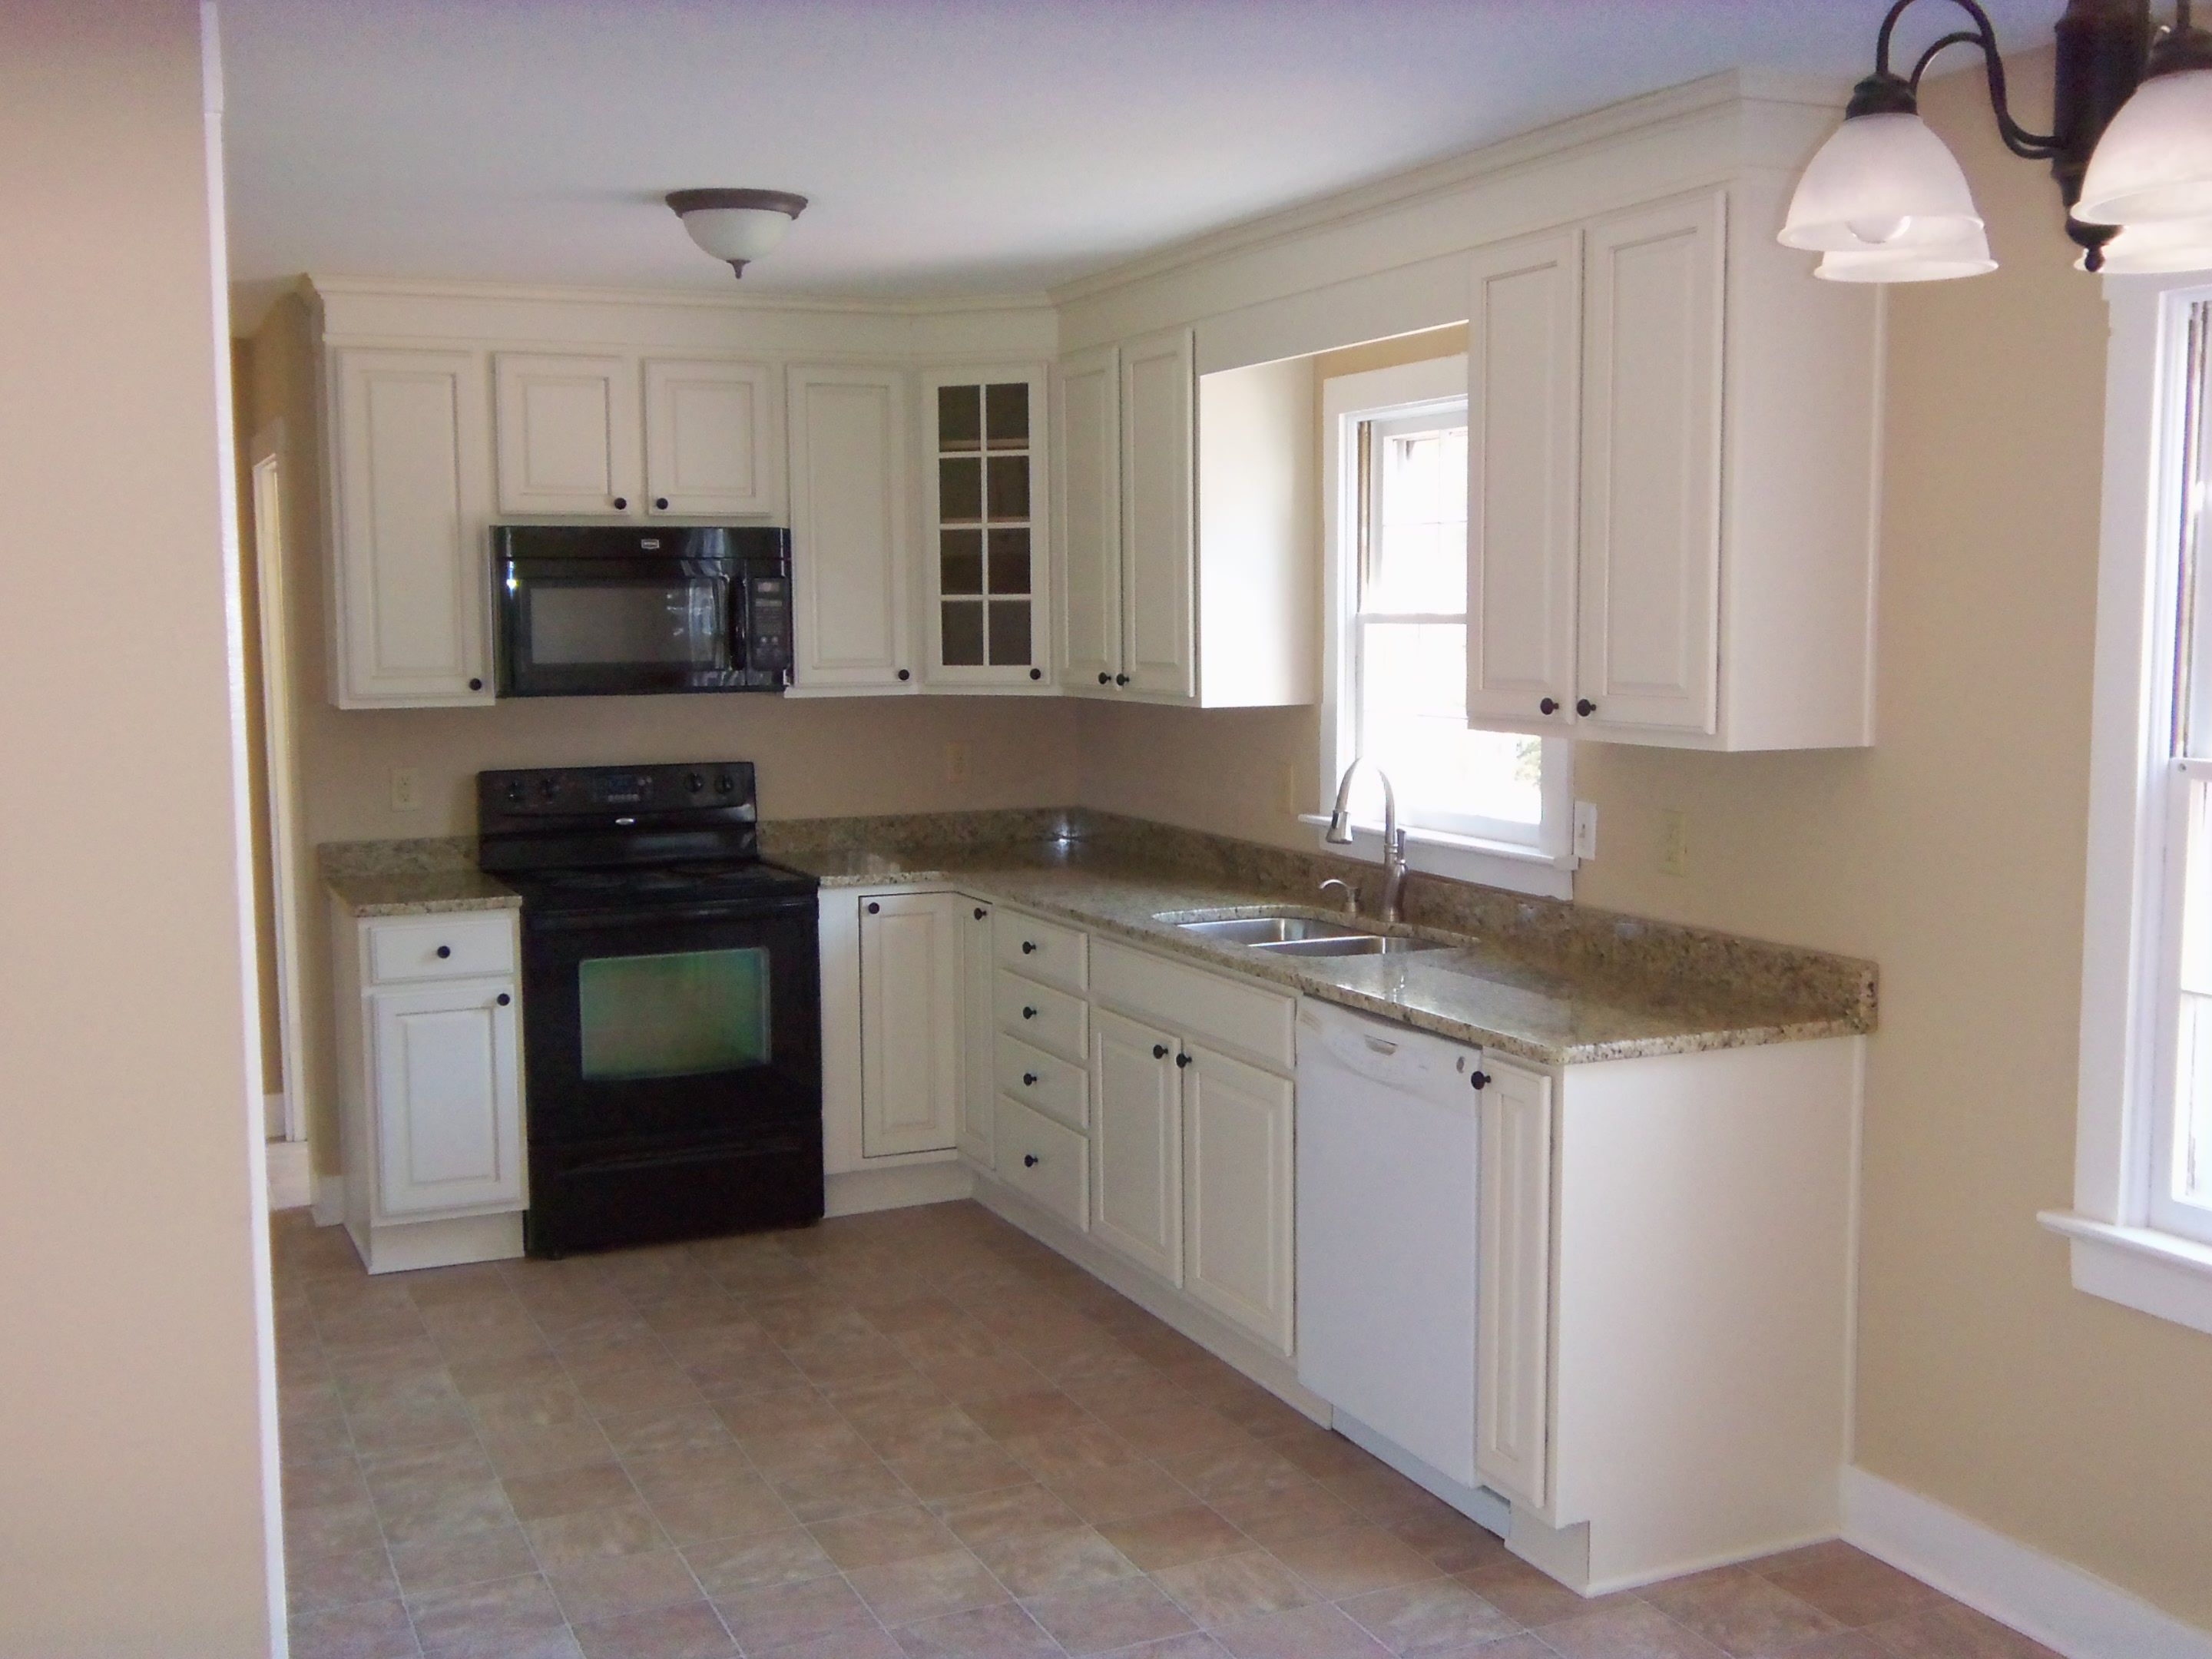 Stunning Simple Kitchen Design L Shape On Kitchen With Pb L Shaped Kitchen After Glen Allen